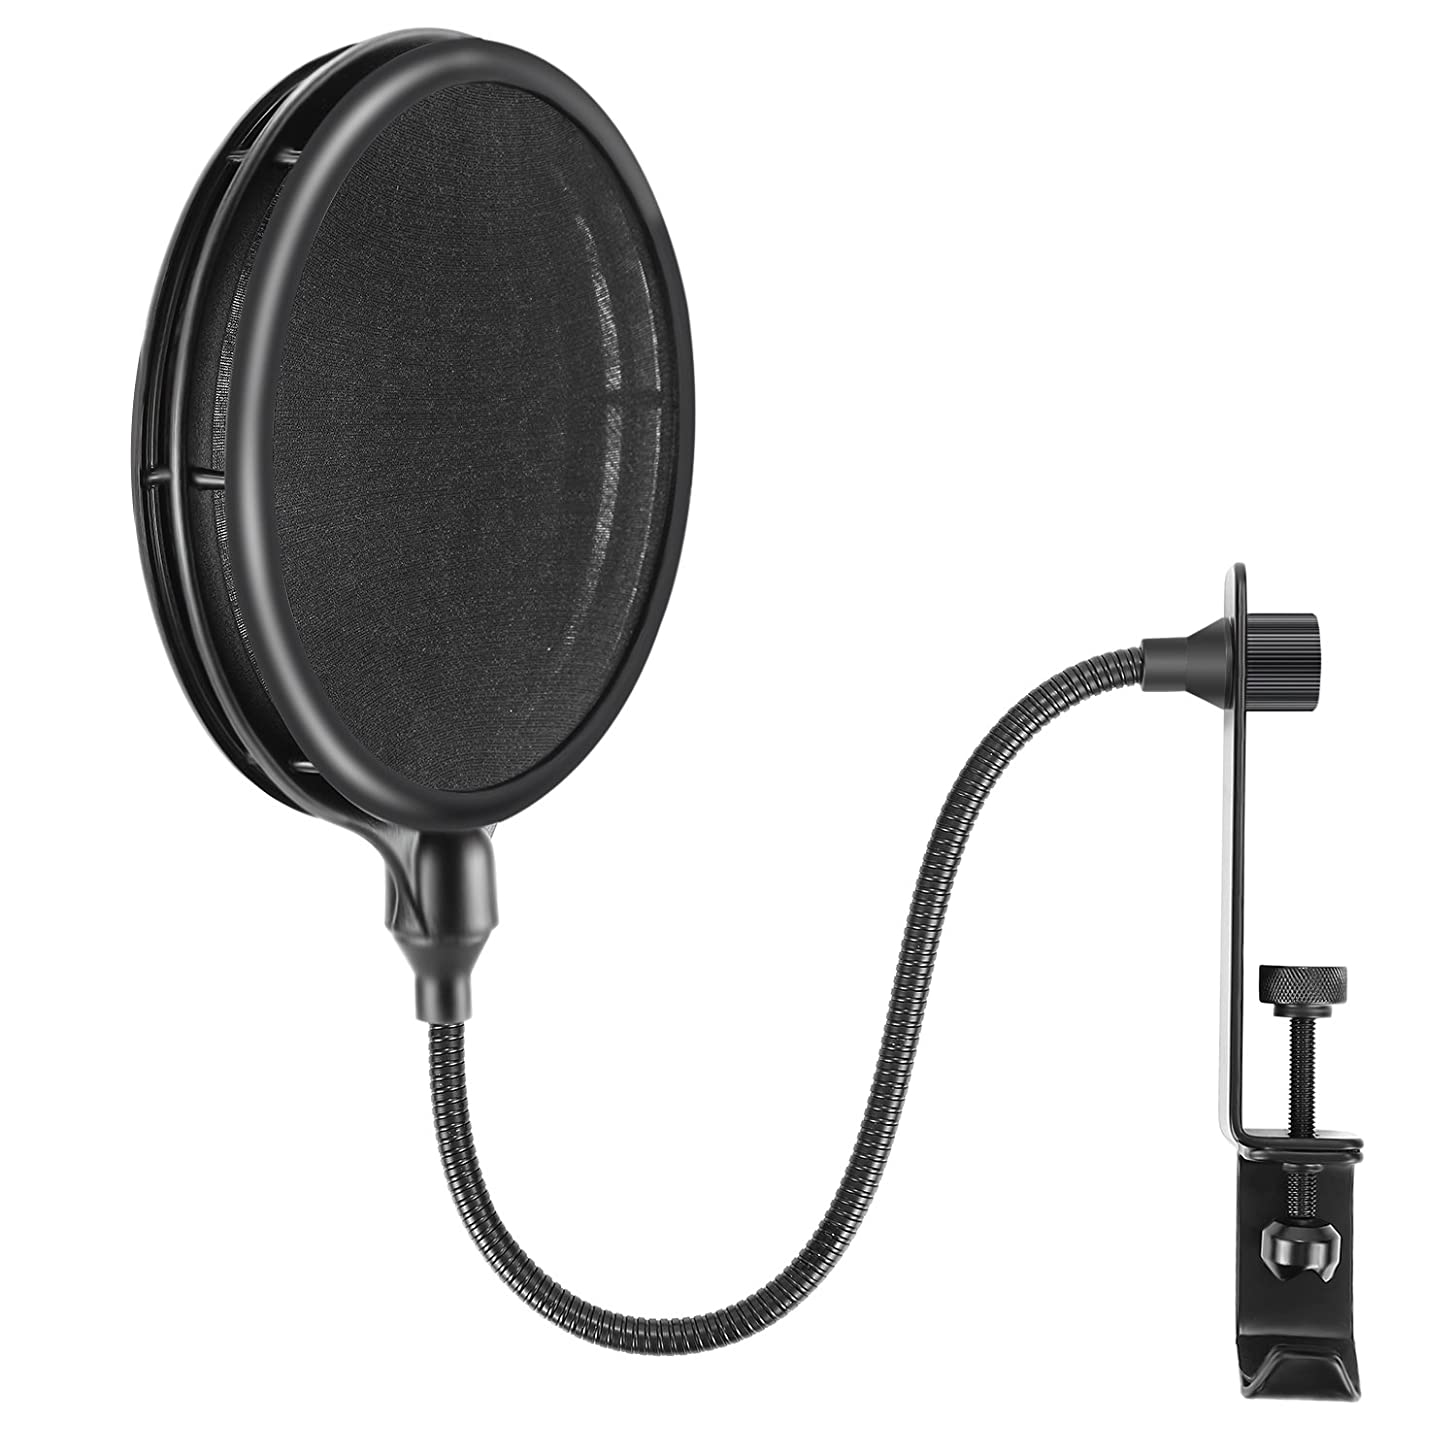 Neewer NW-019 Dual Layer Microphone Pop Filter with Flexible Gooseneck Extendable Metal Clamp Arm, Soft Nylon Filter for USB, Dynamic, Ribbon Microphones Like Blue Yeti Blue Spark Snowball Samson C01U